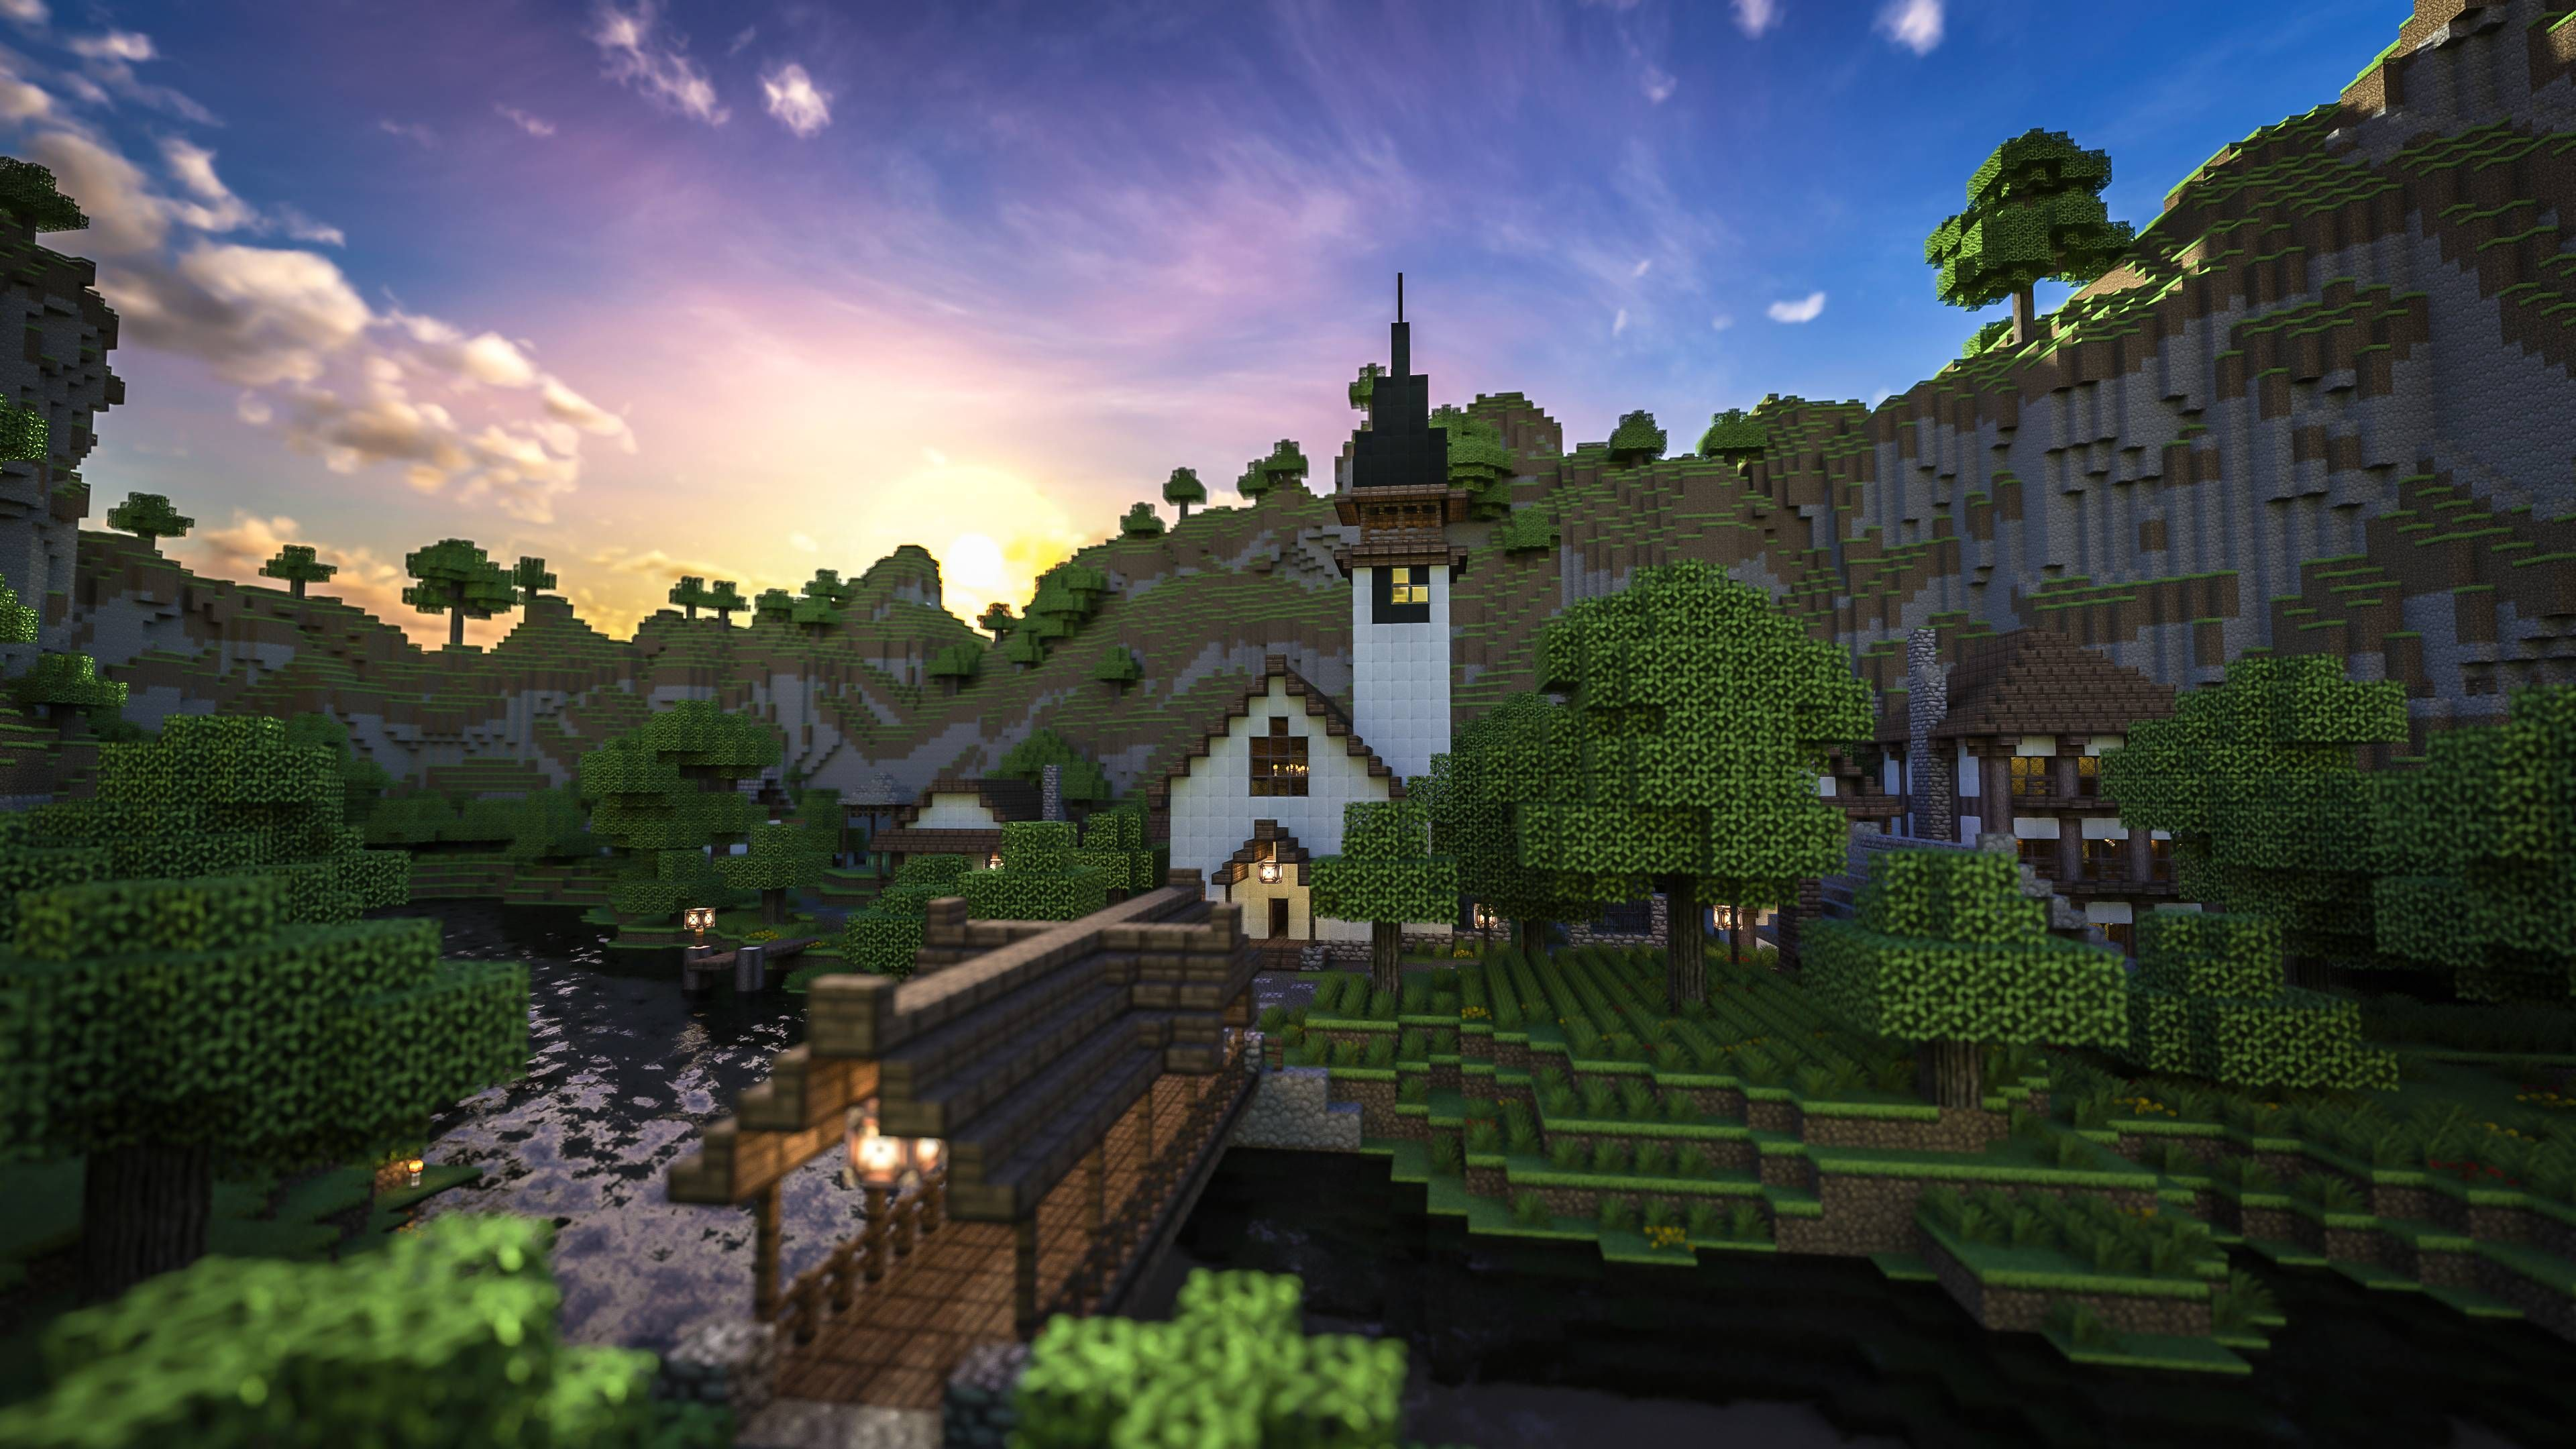 Great Wallpaper Minecraft Houses - 2a2f121e56a45c915d0db8eb810520b2  Perfect Image Reference_783966.jpg